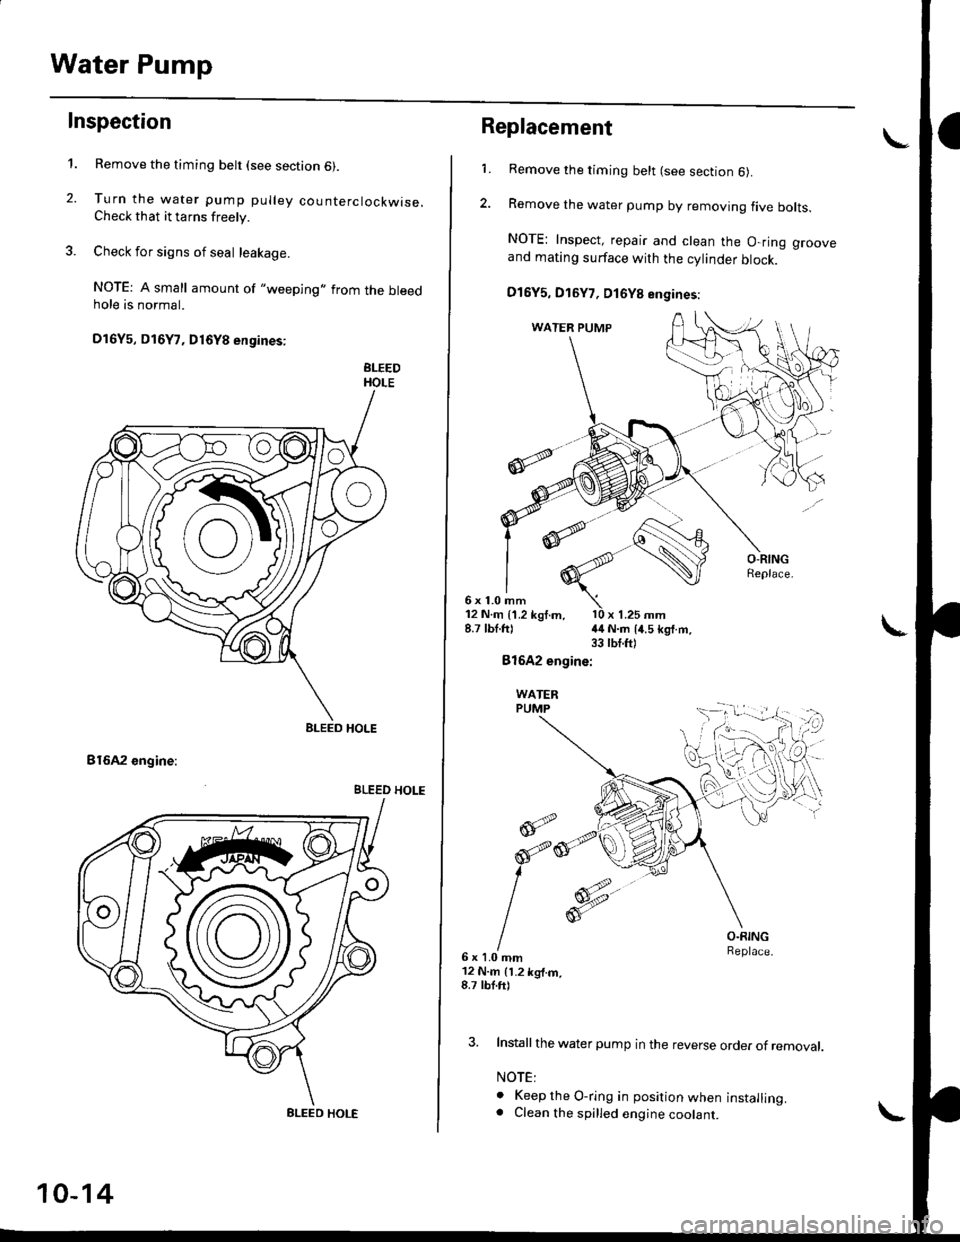 Pontiac Grand Prix Service Repair Manual 1997 2003